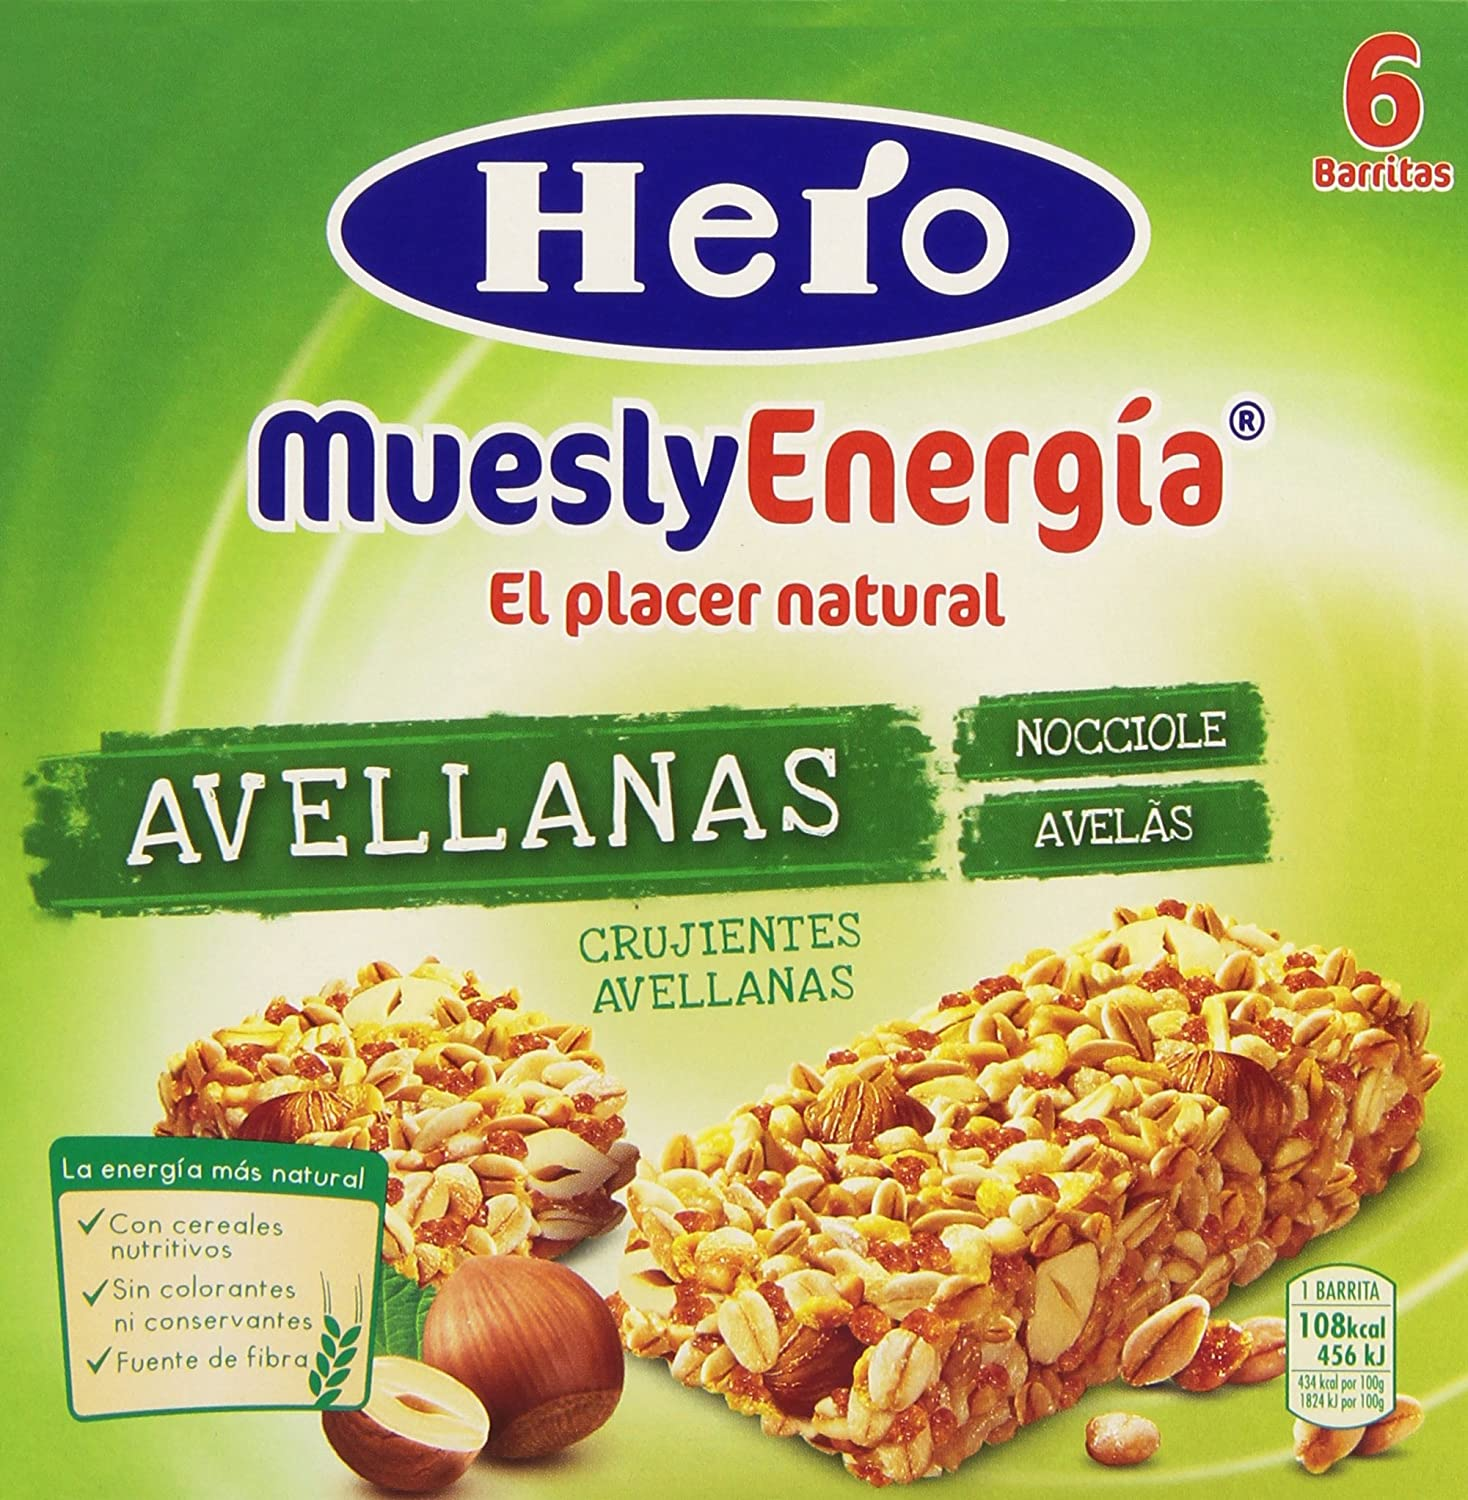 Barrita Hero Muesly Energía Avellanas - Pack de 6 x 25 g - Total: 150 g: Amazon.es: Amazon Pantry